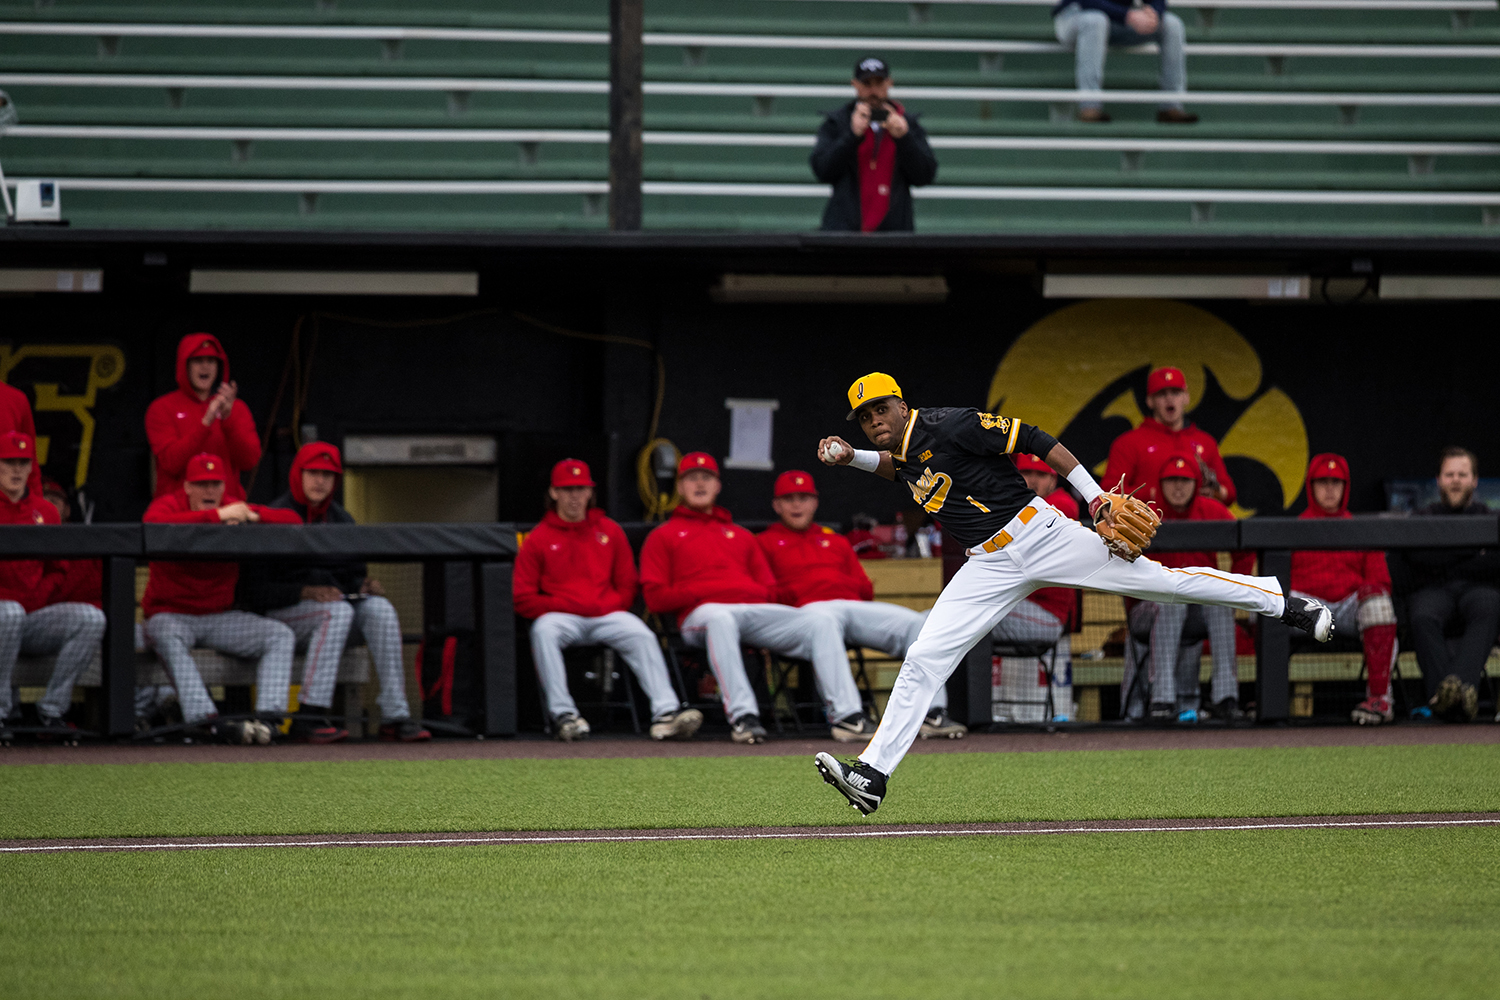 Iowa%27s+Lorenzo+Ellion+attempts+to+throw+a+ball+towards+first+base+during+a+baseball+game+against+Illinois+State+on+Wednesday%2C+Apr.+3%2C+2019.+The+Hawkeyes+lost+to+the+Redbirds+11-6.+%28Roman+Slabach%2FThe+Daily+Iowan%29